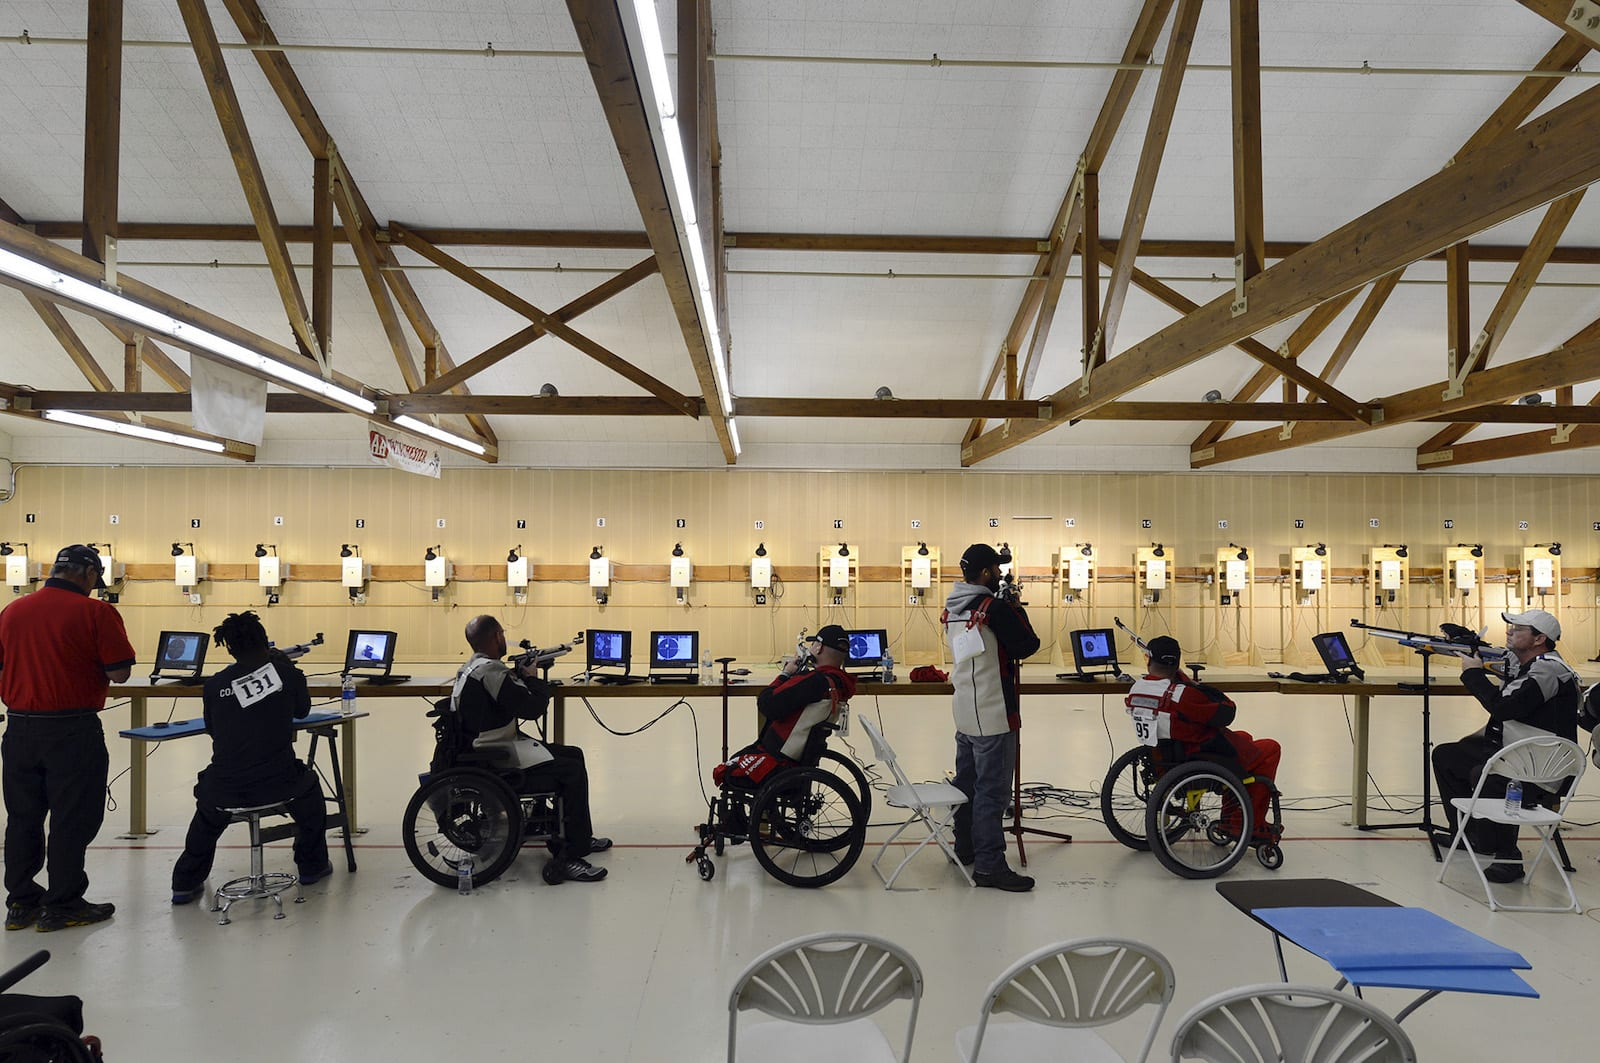 U.S. Olympic & Paralympic Training Center, CO